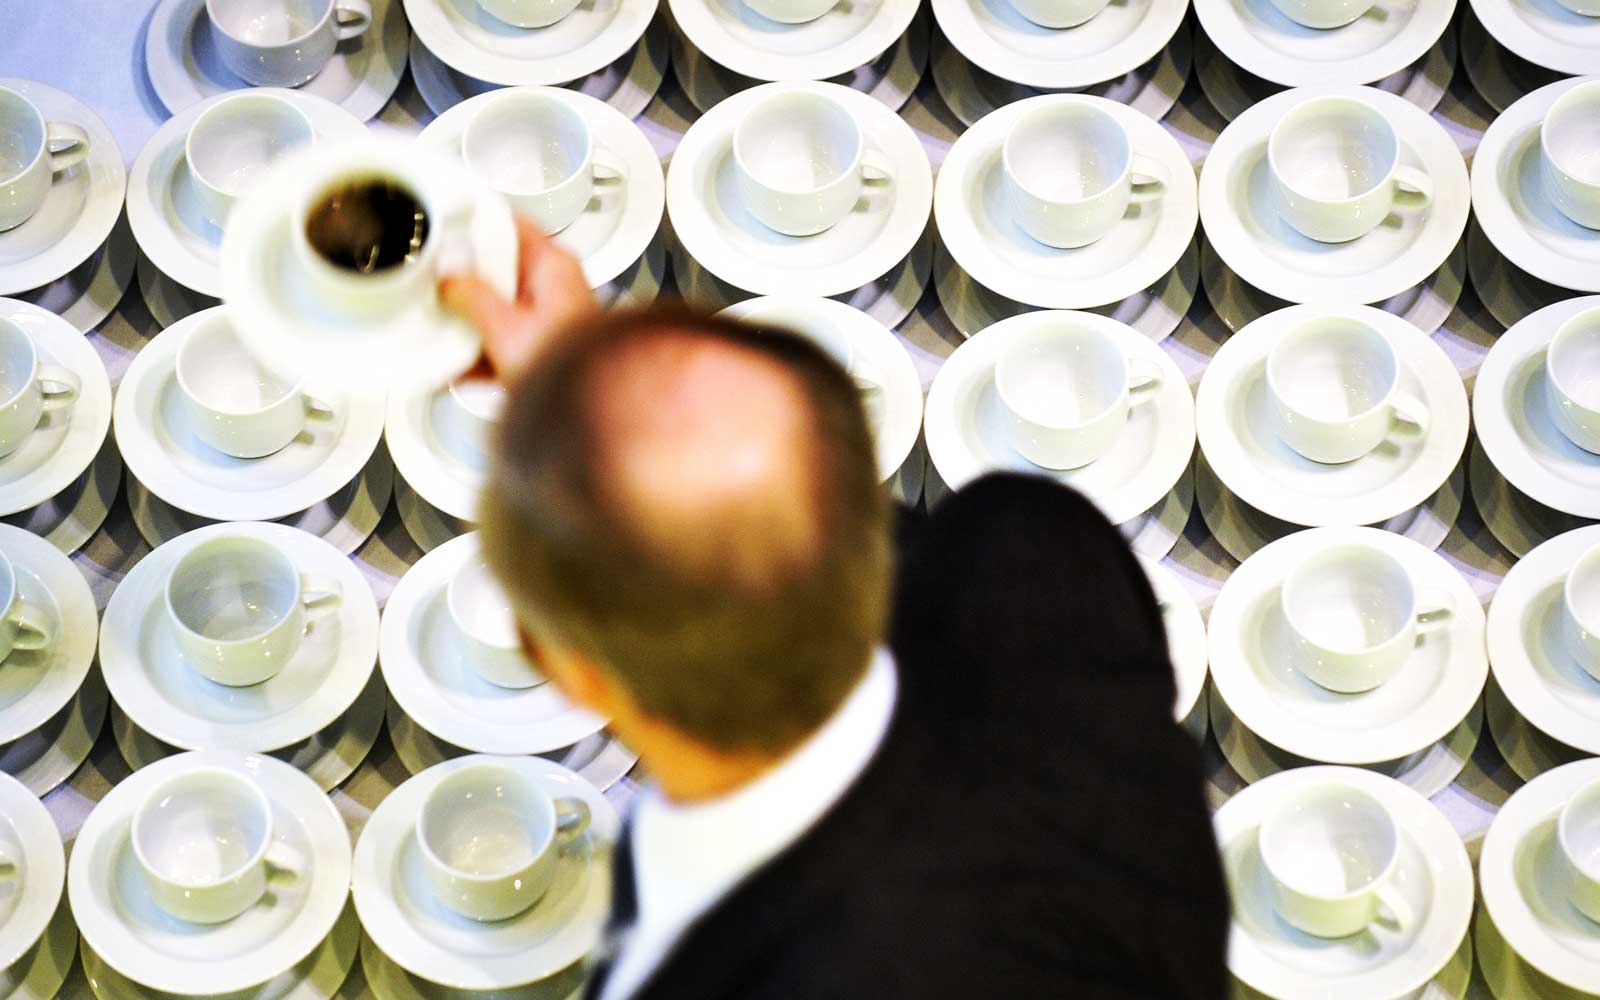 Switzerland to consider stockpiling coffee beans for times of crisis